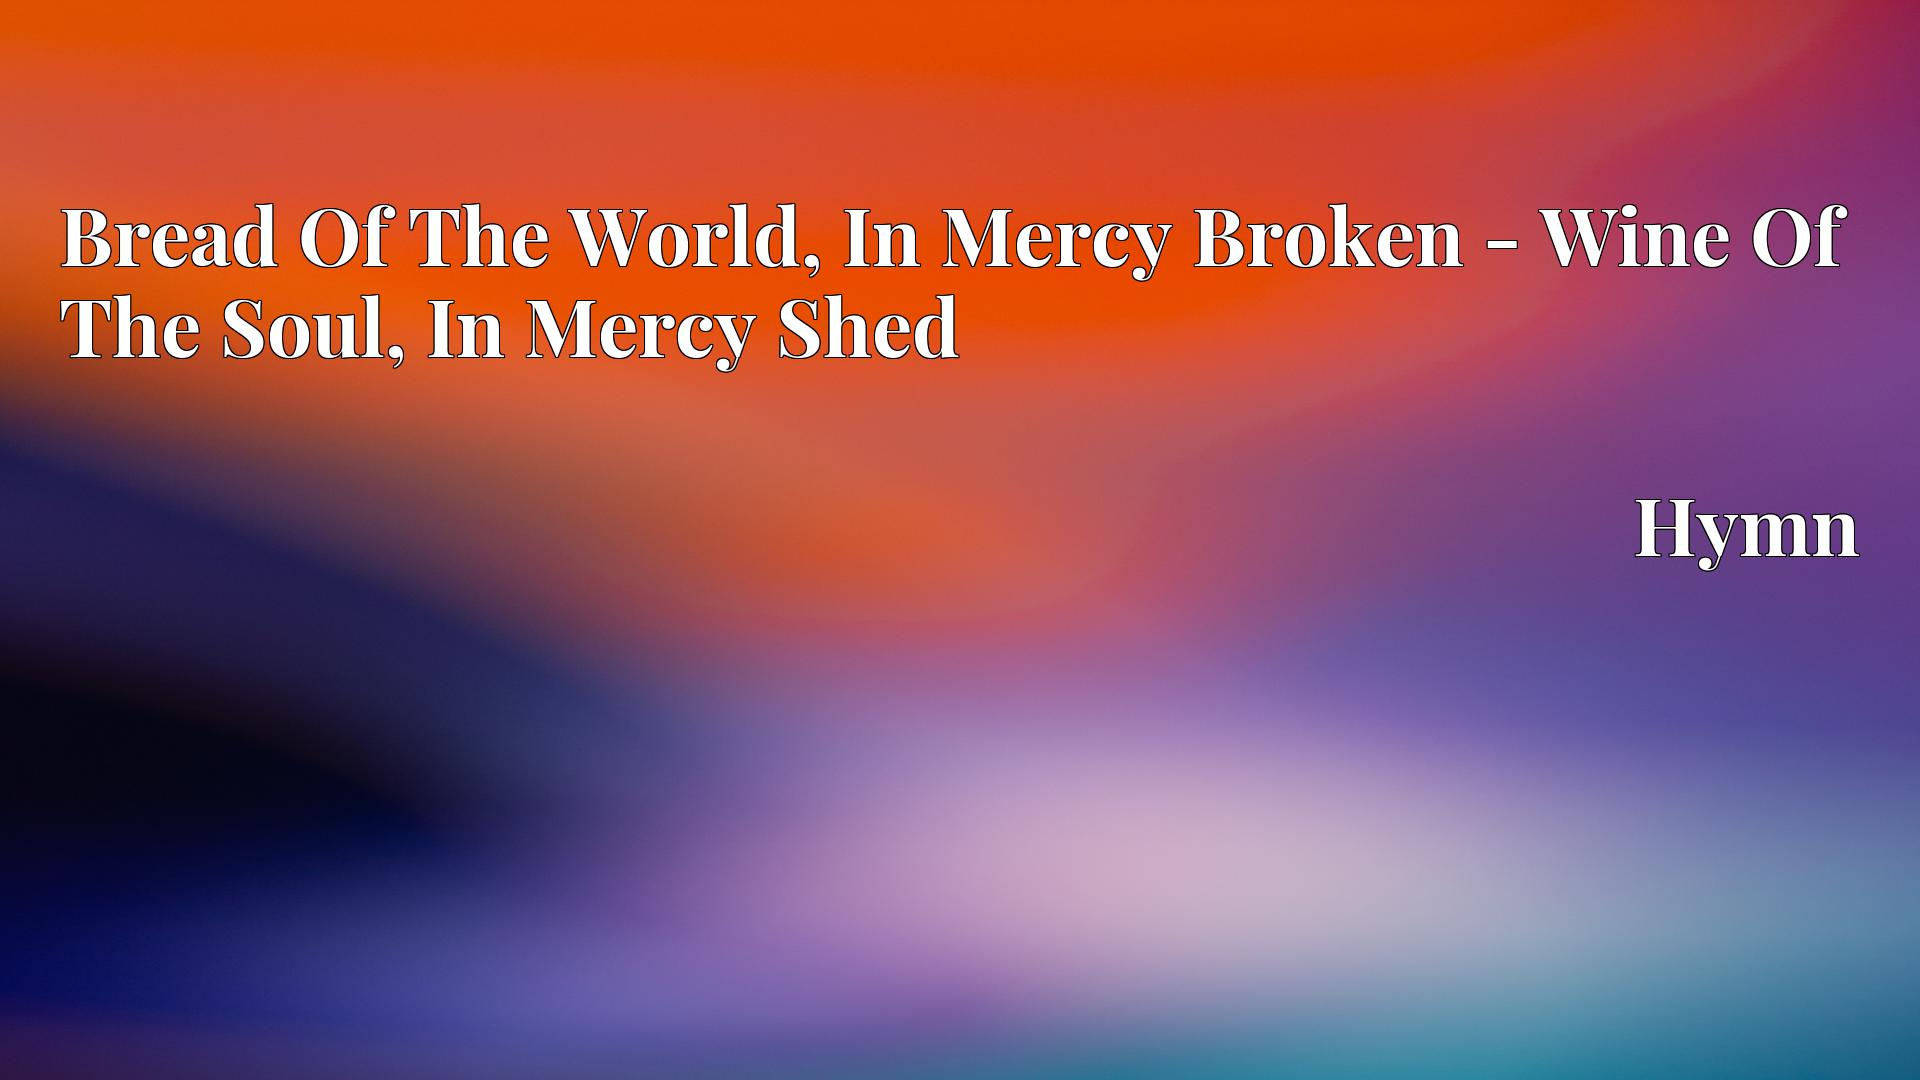 Bread Of The World, In Mercy Broken - Wine Of The Soul, In Mercy Shed - Hymn